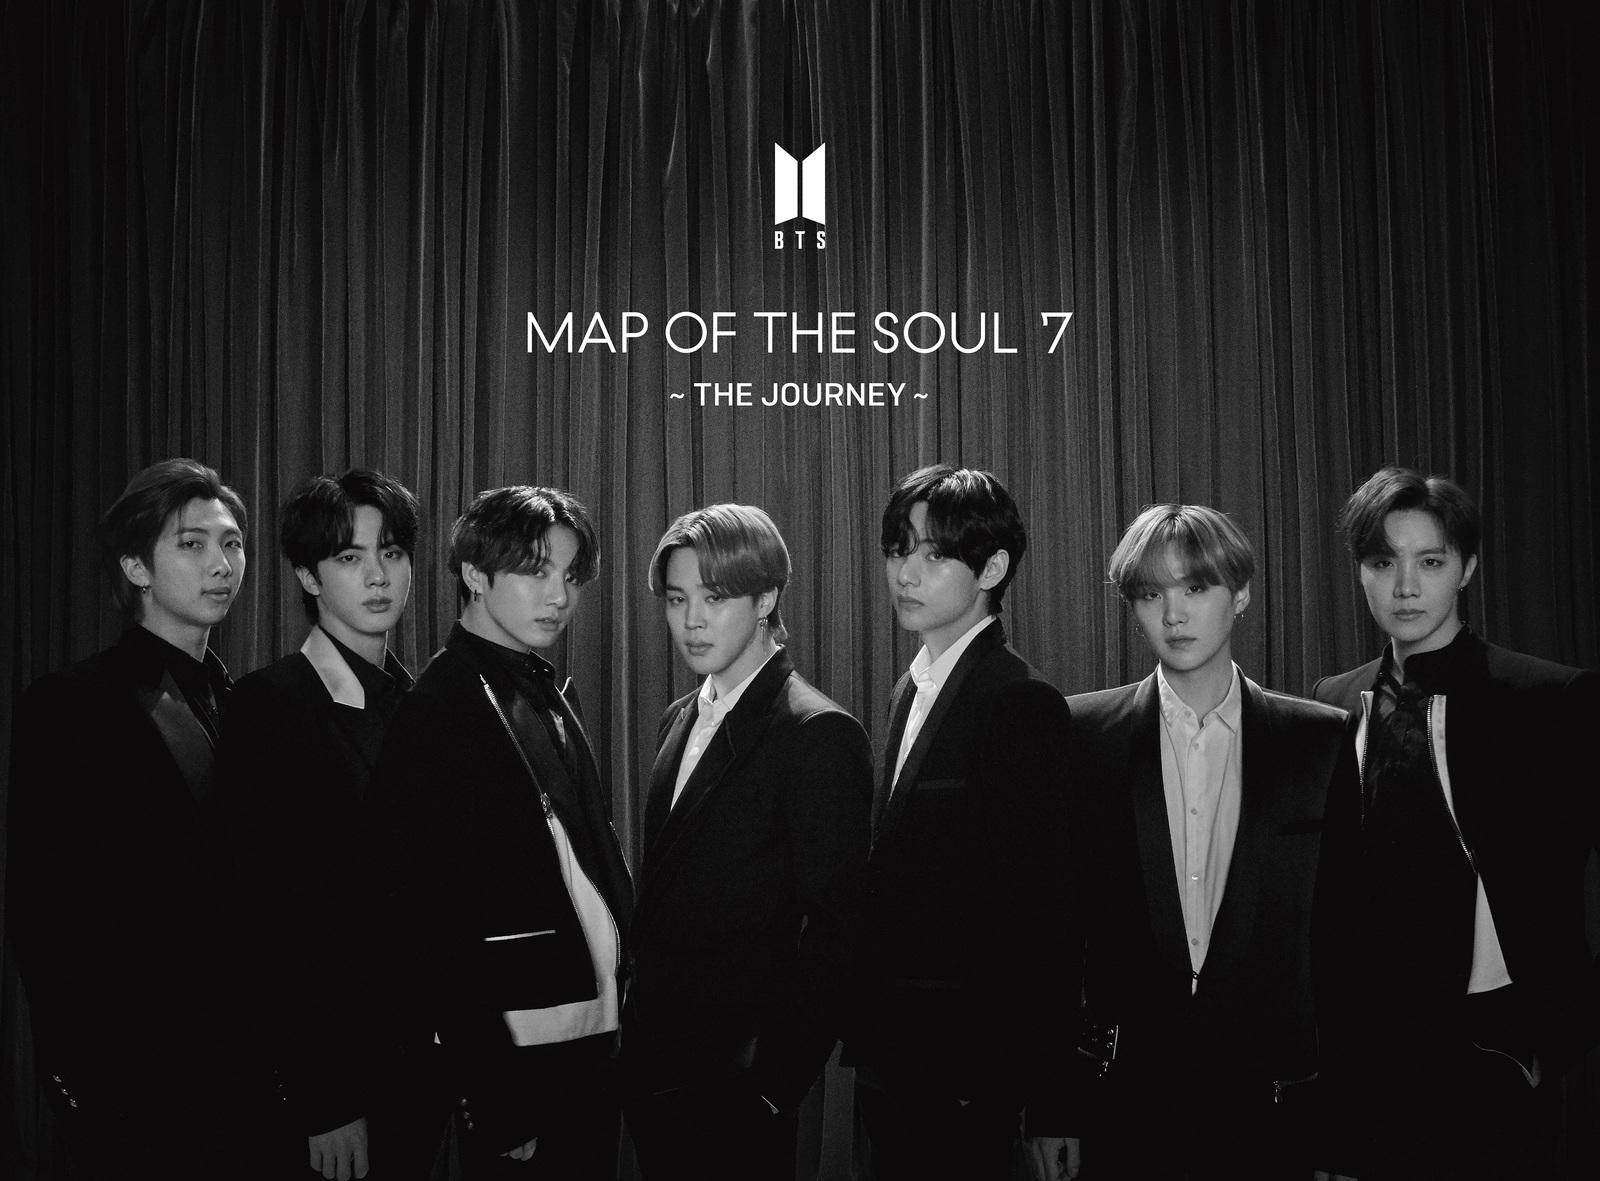 Map Of The Soul: 7 The Journey - Limited Edition (C) by BTS image